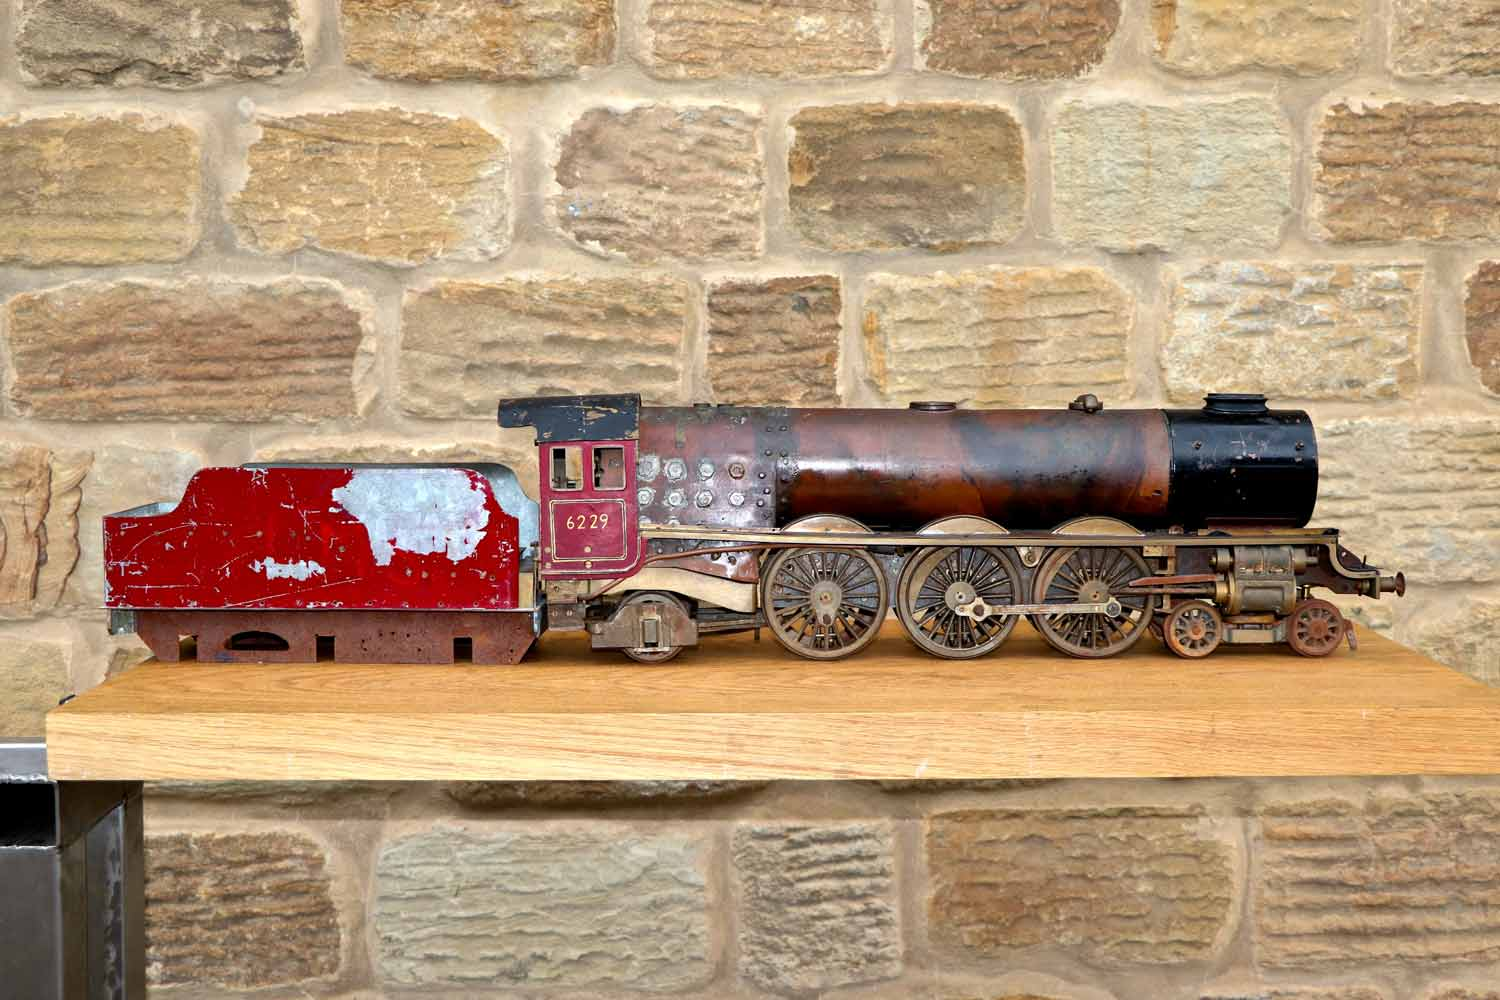 test 2-and-a-half-inch-gauge-LMS-Duchess-live-steam-locomotive-for-sale-06